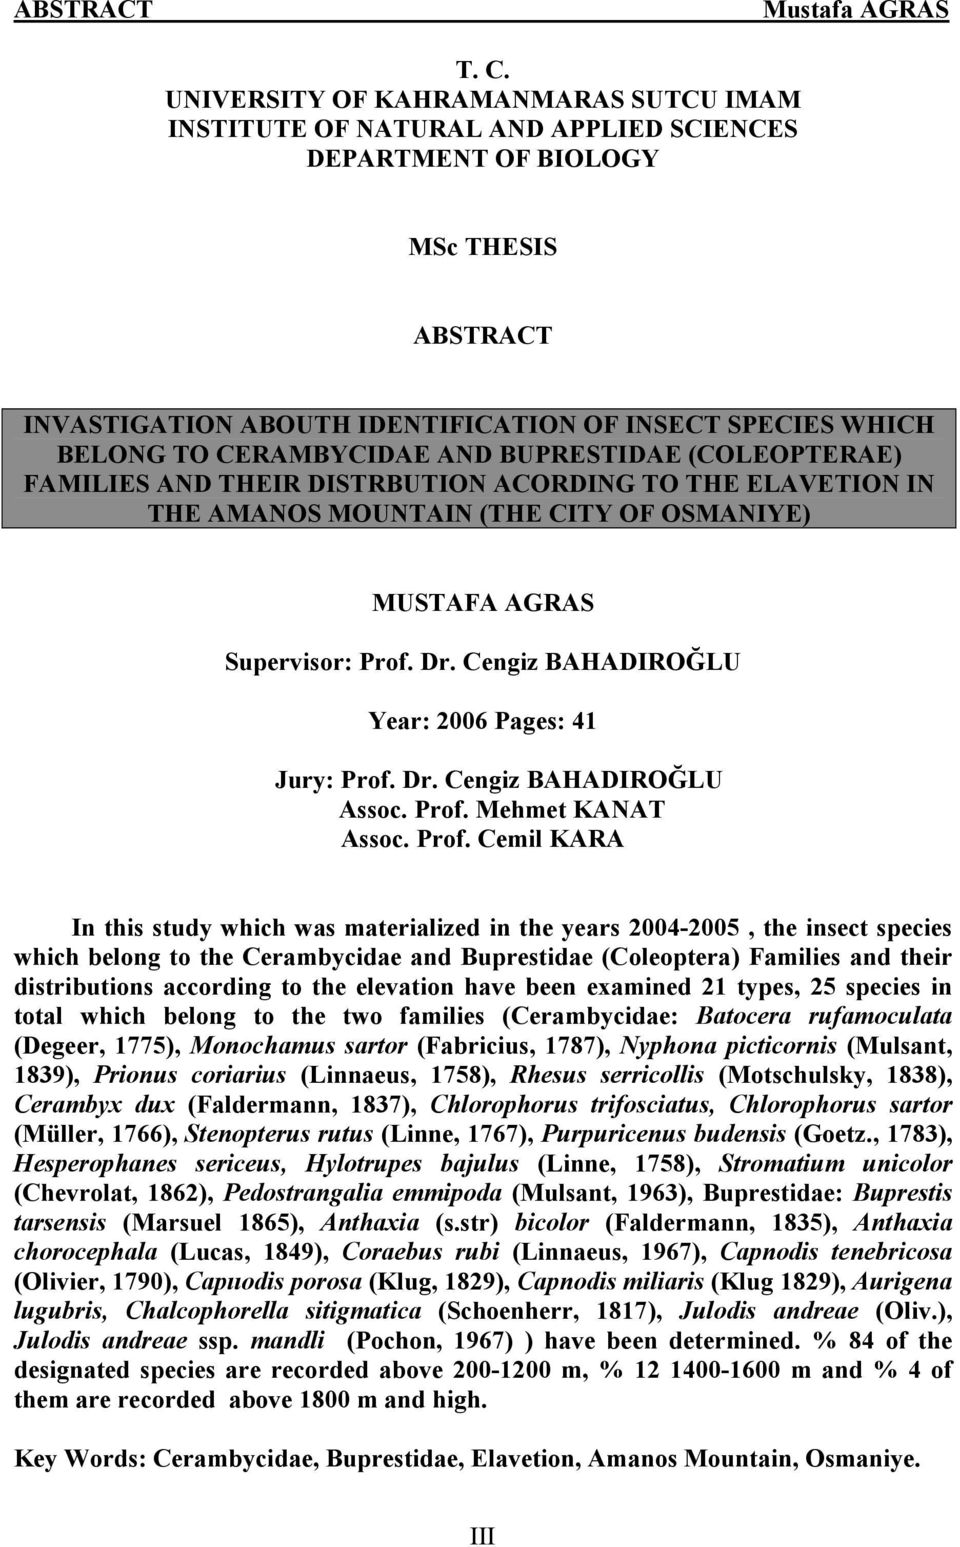 CERAMBYCIDAE AND BUPRESTIDAE (COLEOPTERAE) FAMILIES AND THEIR DISTRBUTION ACORDING TO THE ELAVETION IN THE AMANOS MOUNTAIN (THE CITY OF OSMANIYE) MUSTAFA AGRAS Supervisor: Prof. Dr.